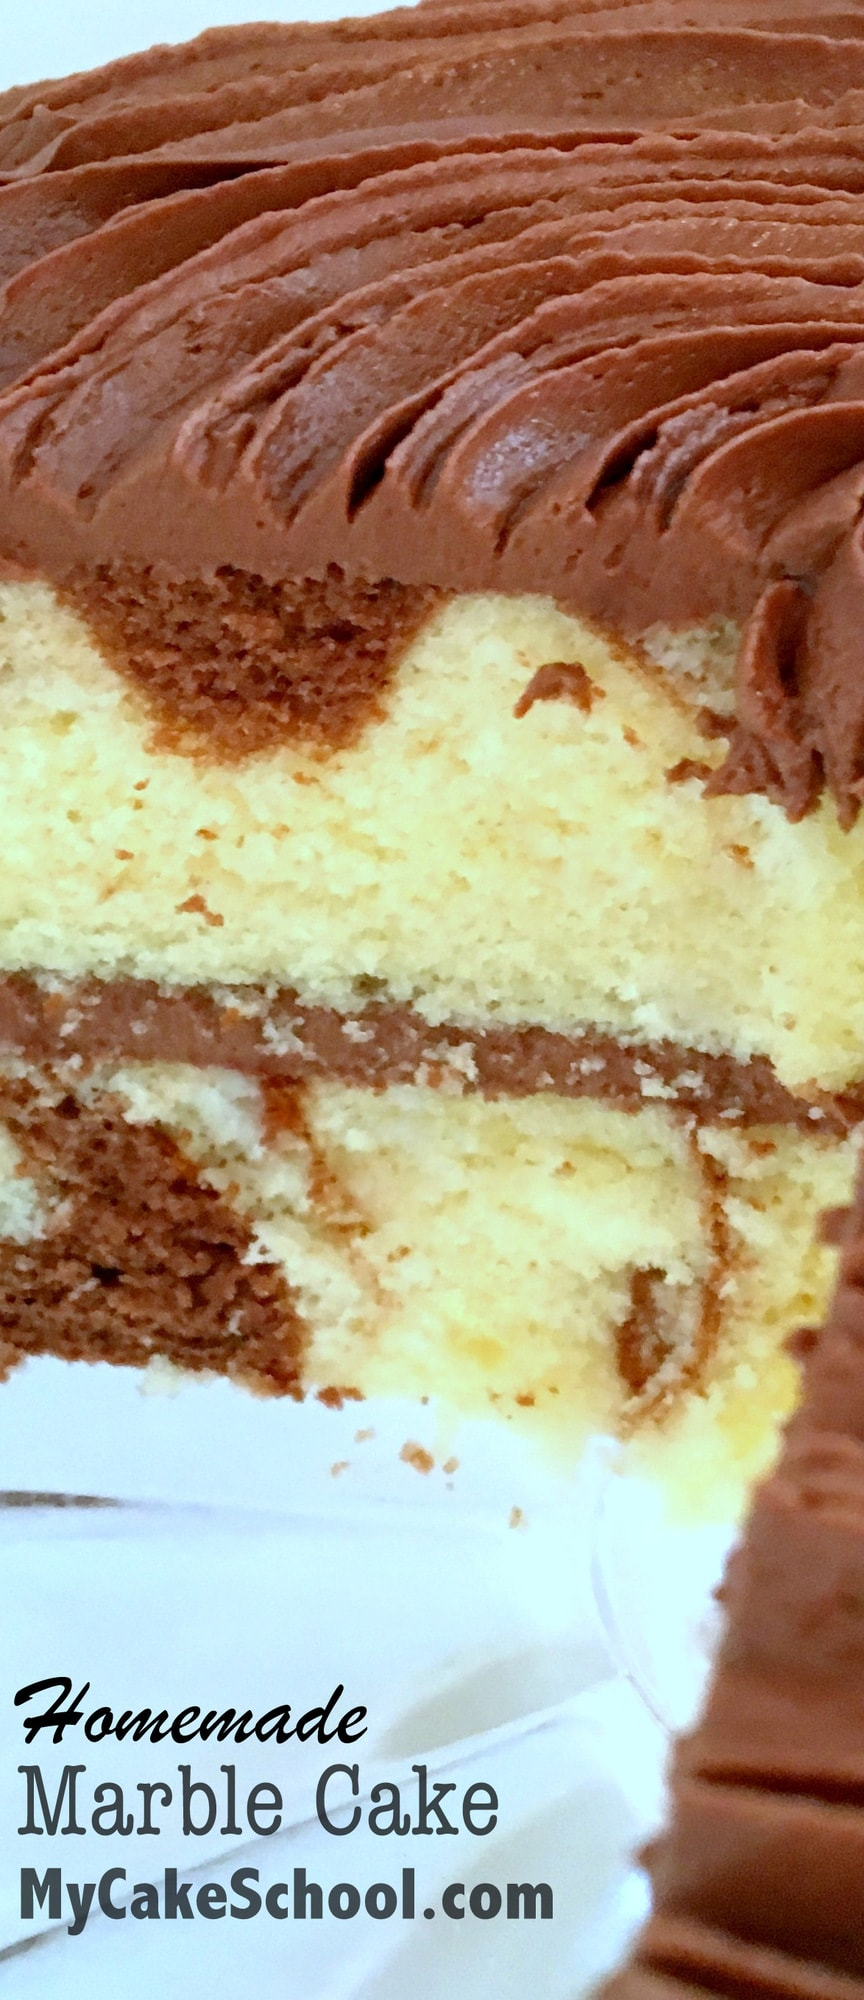 Moist And Delicious Marble Cake From Scratch!